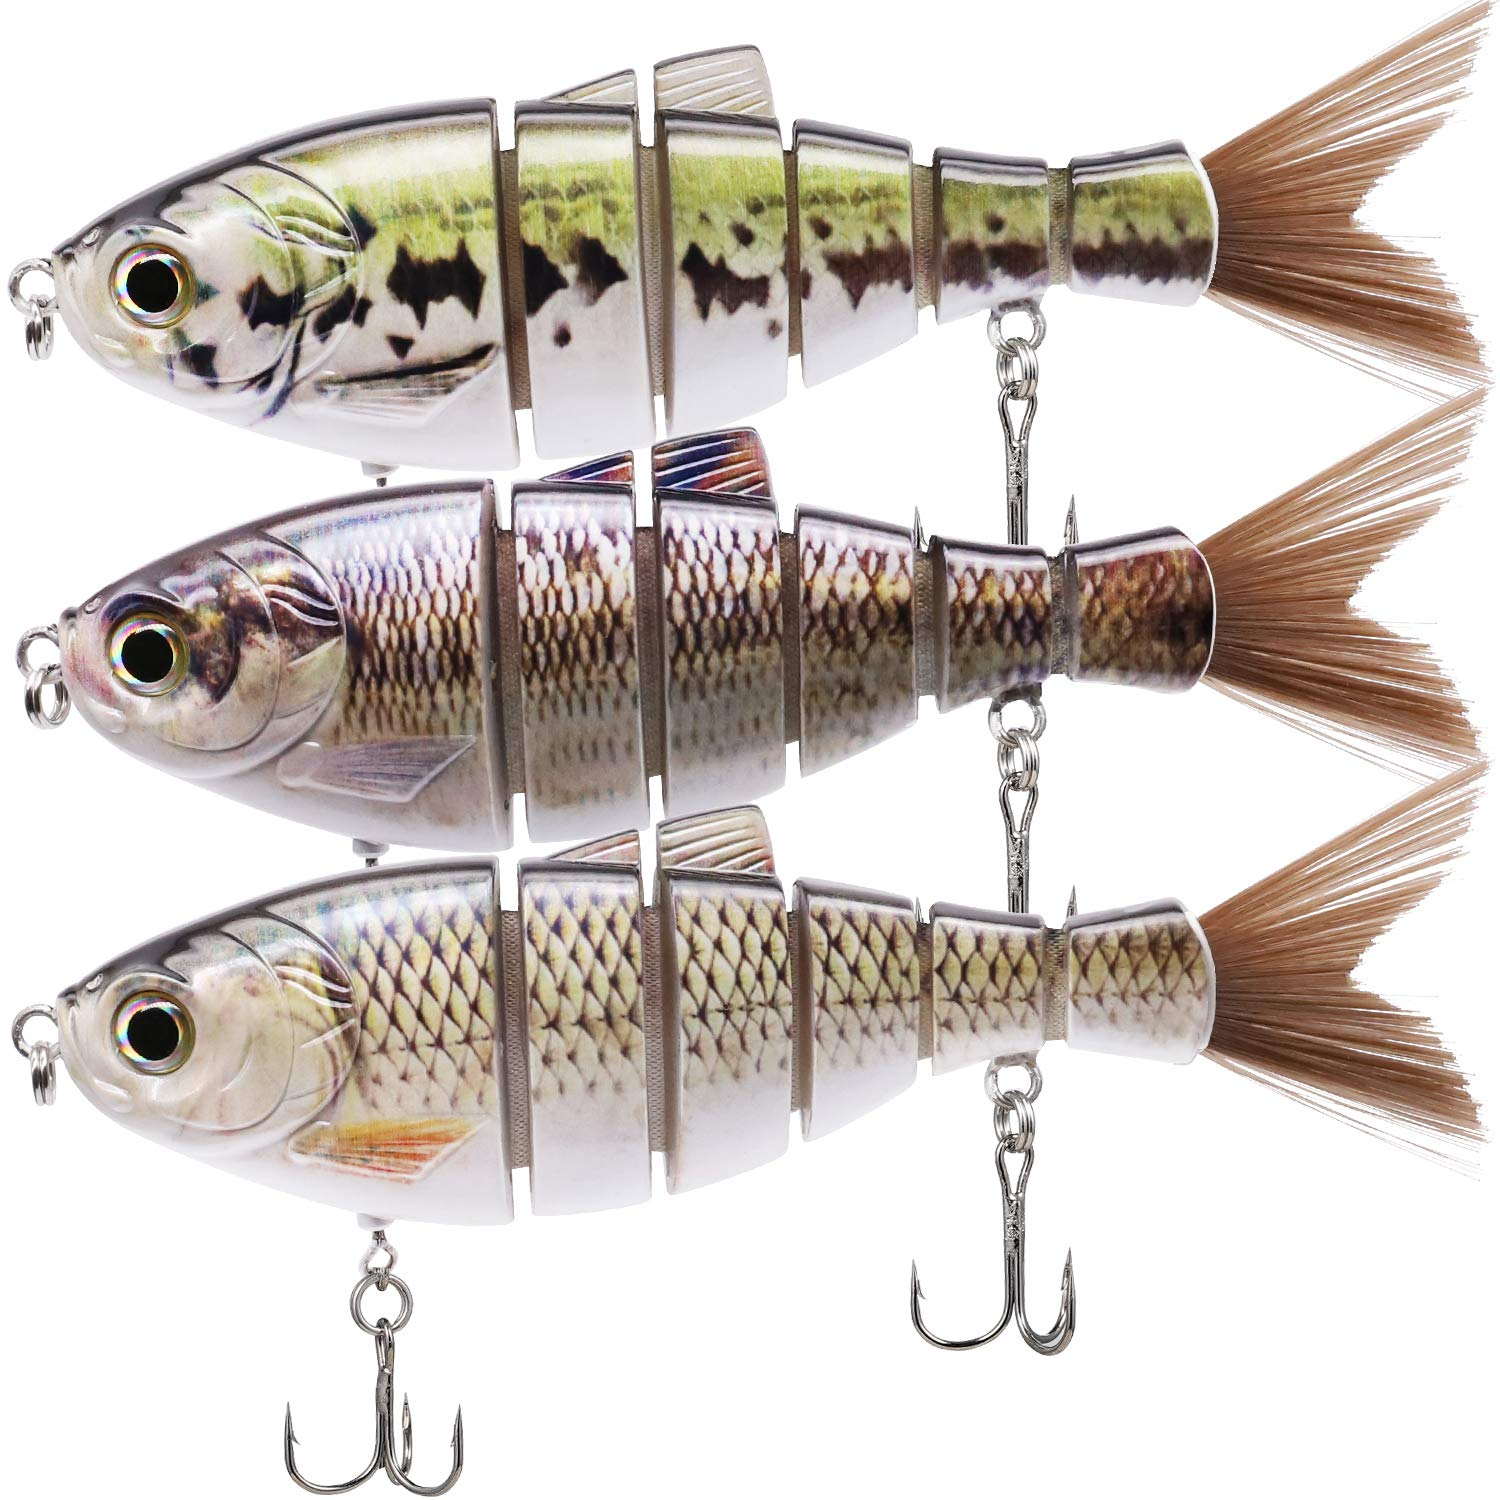 17cm 67g Large Fishing Lures Multi Jointed Bait Wobbler Saltwater Swimbait